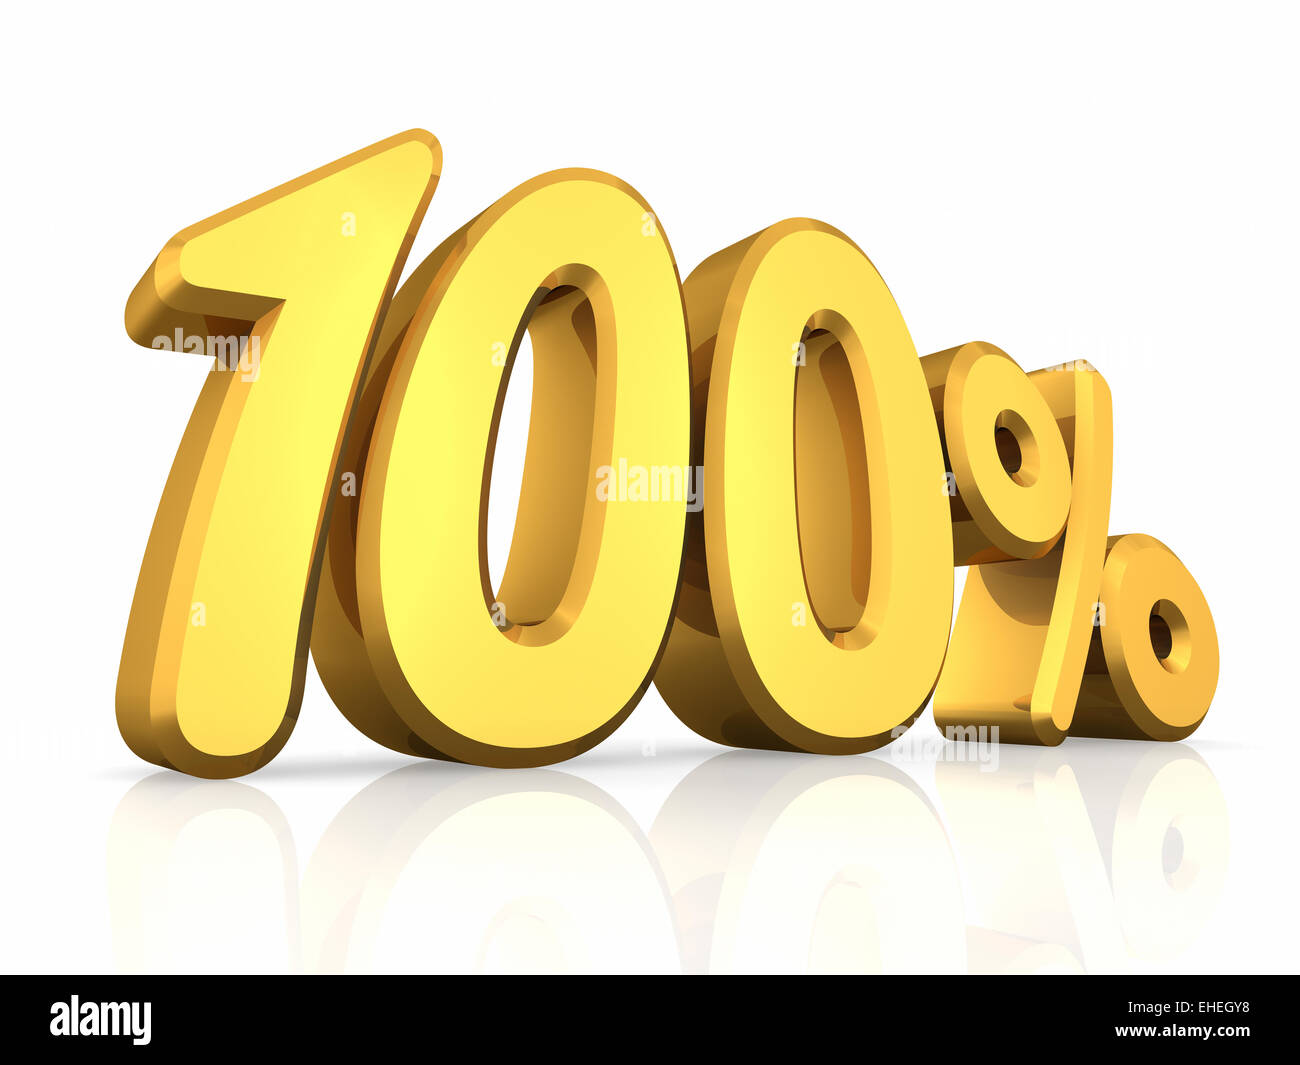 Gold Hundred Percent - Stock Image